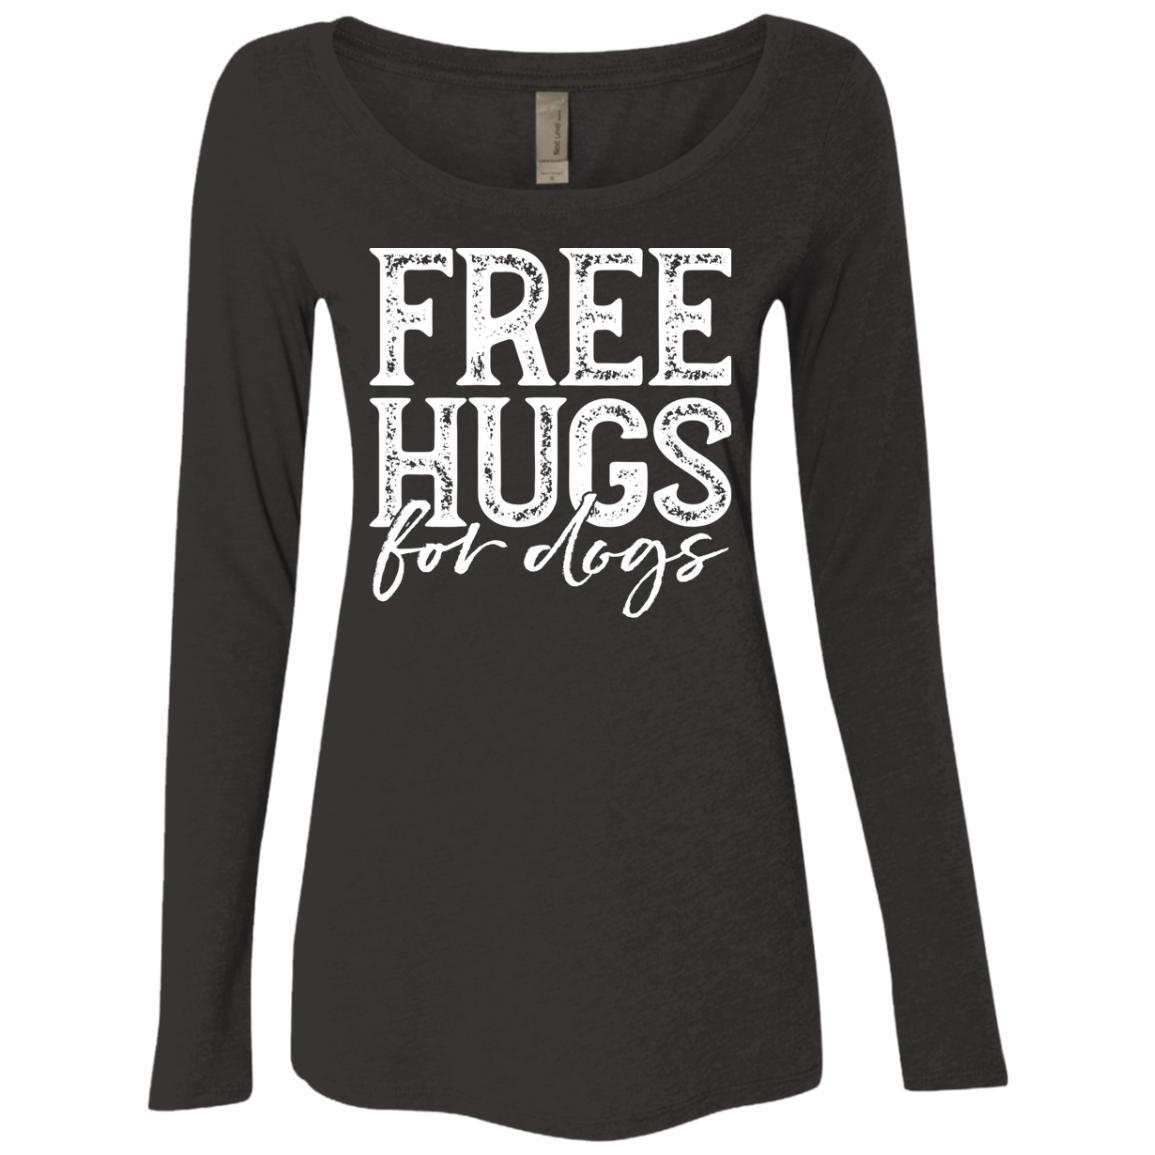 Free Hugs For Dogs Long Sleeve Shirt For Women